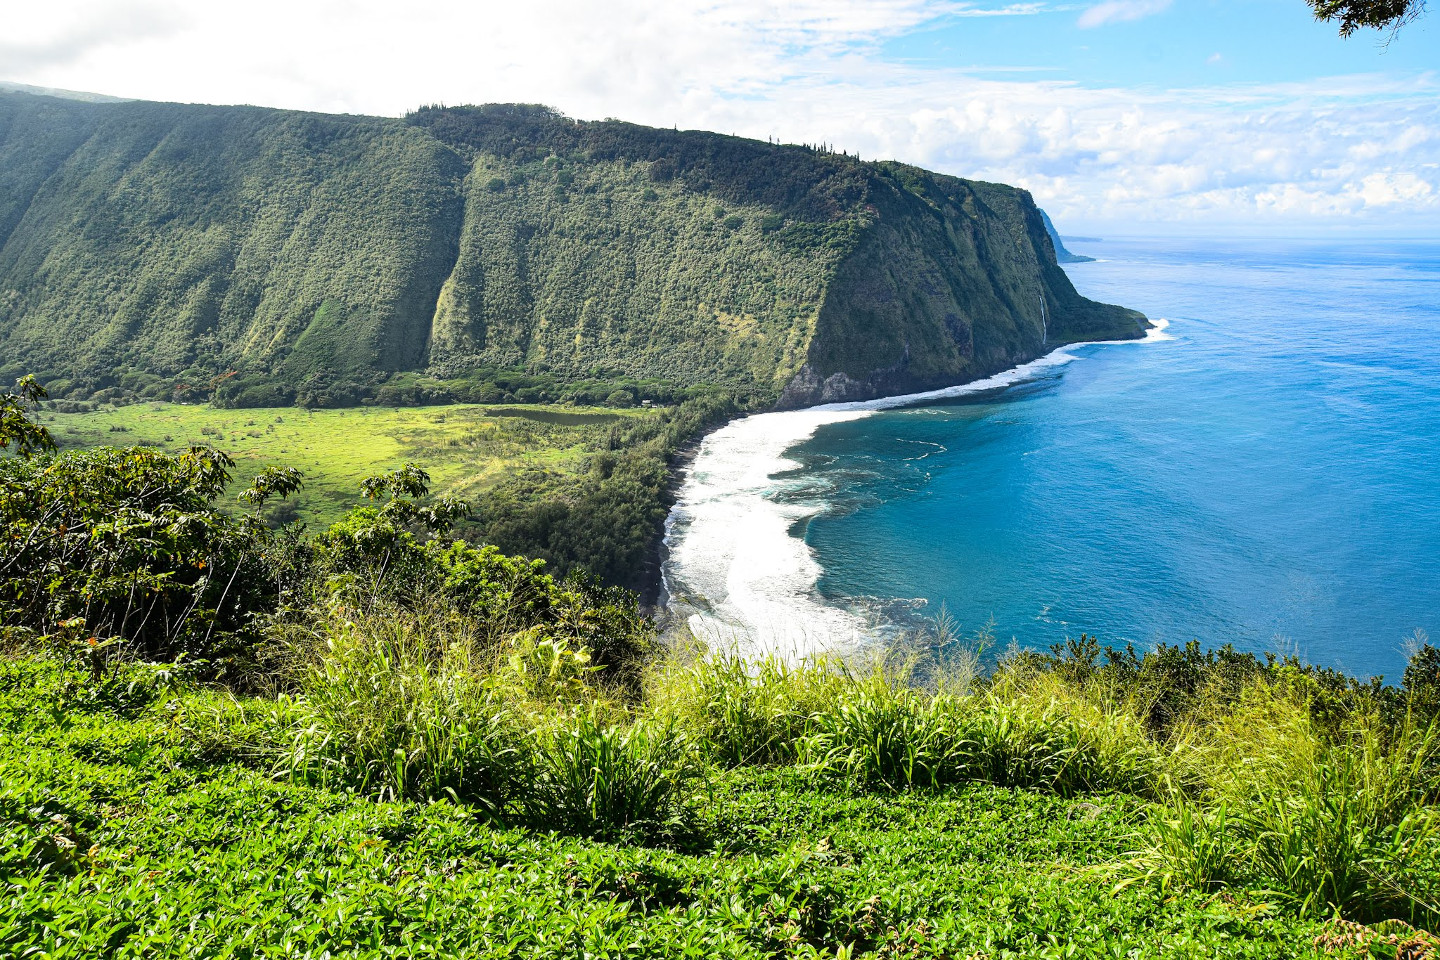 mirador de waipio Big Island Hawaii